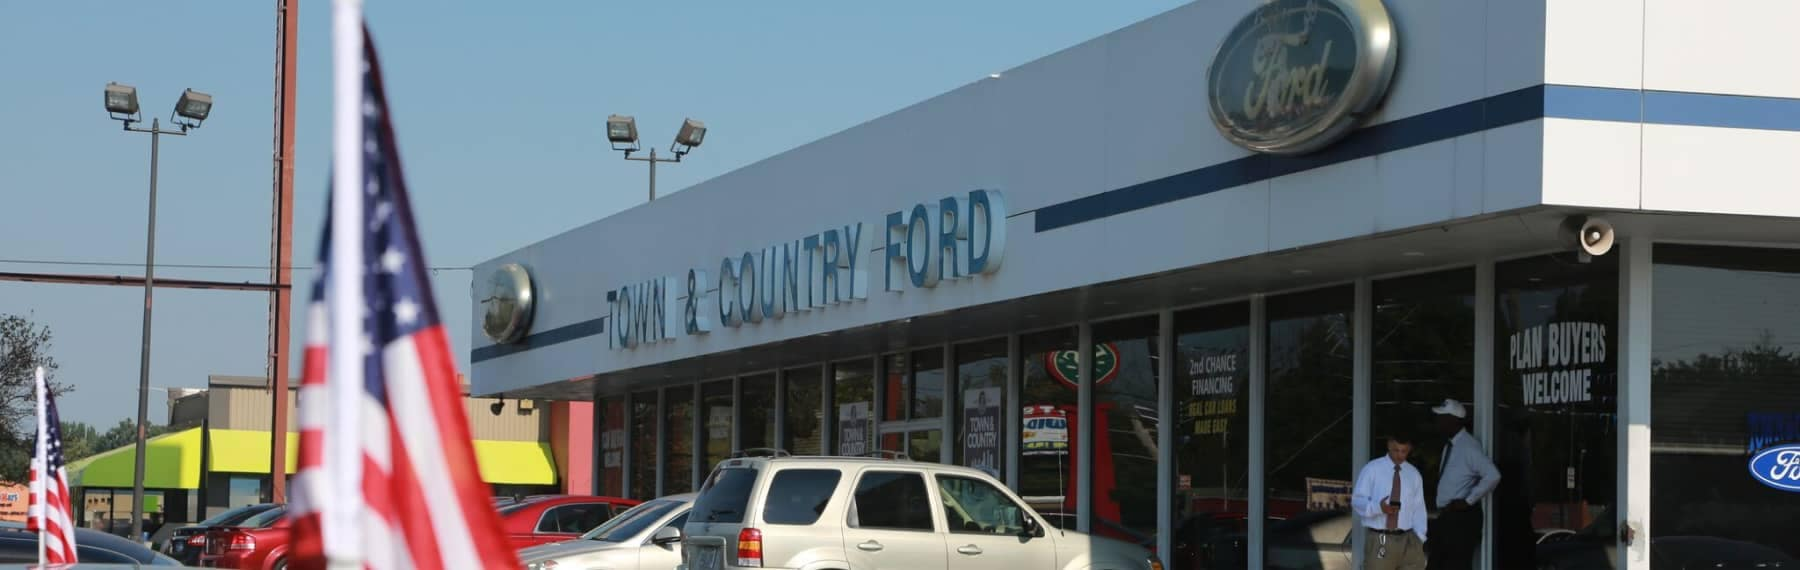 Town & Country Ford of Louisville dealership